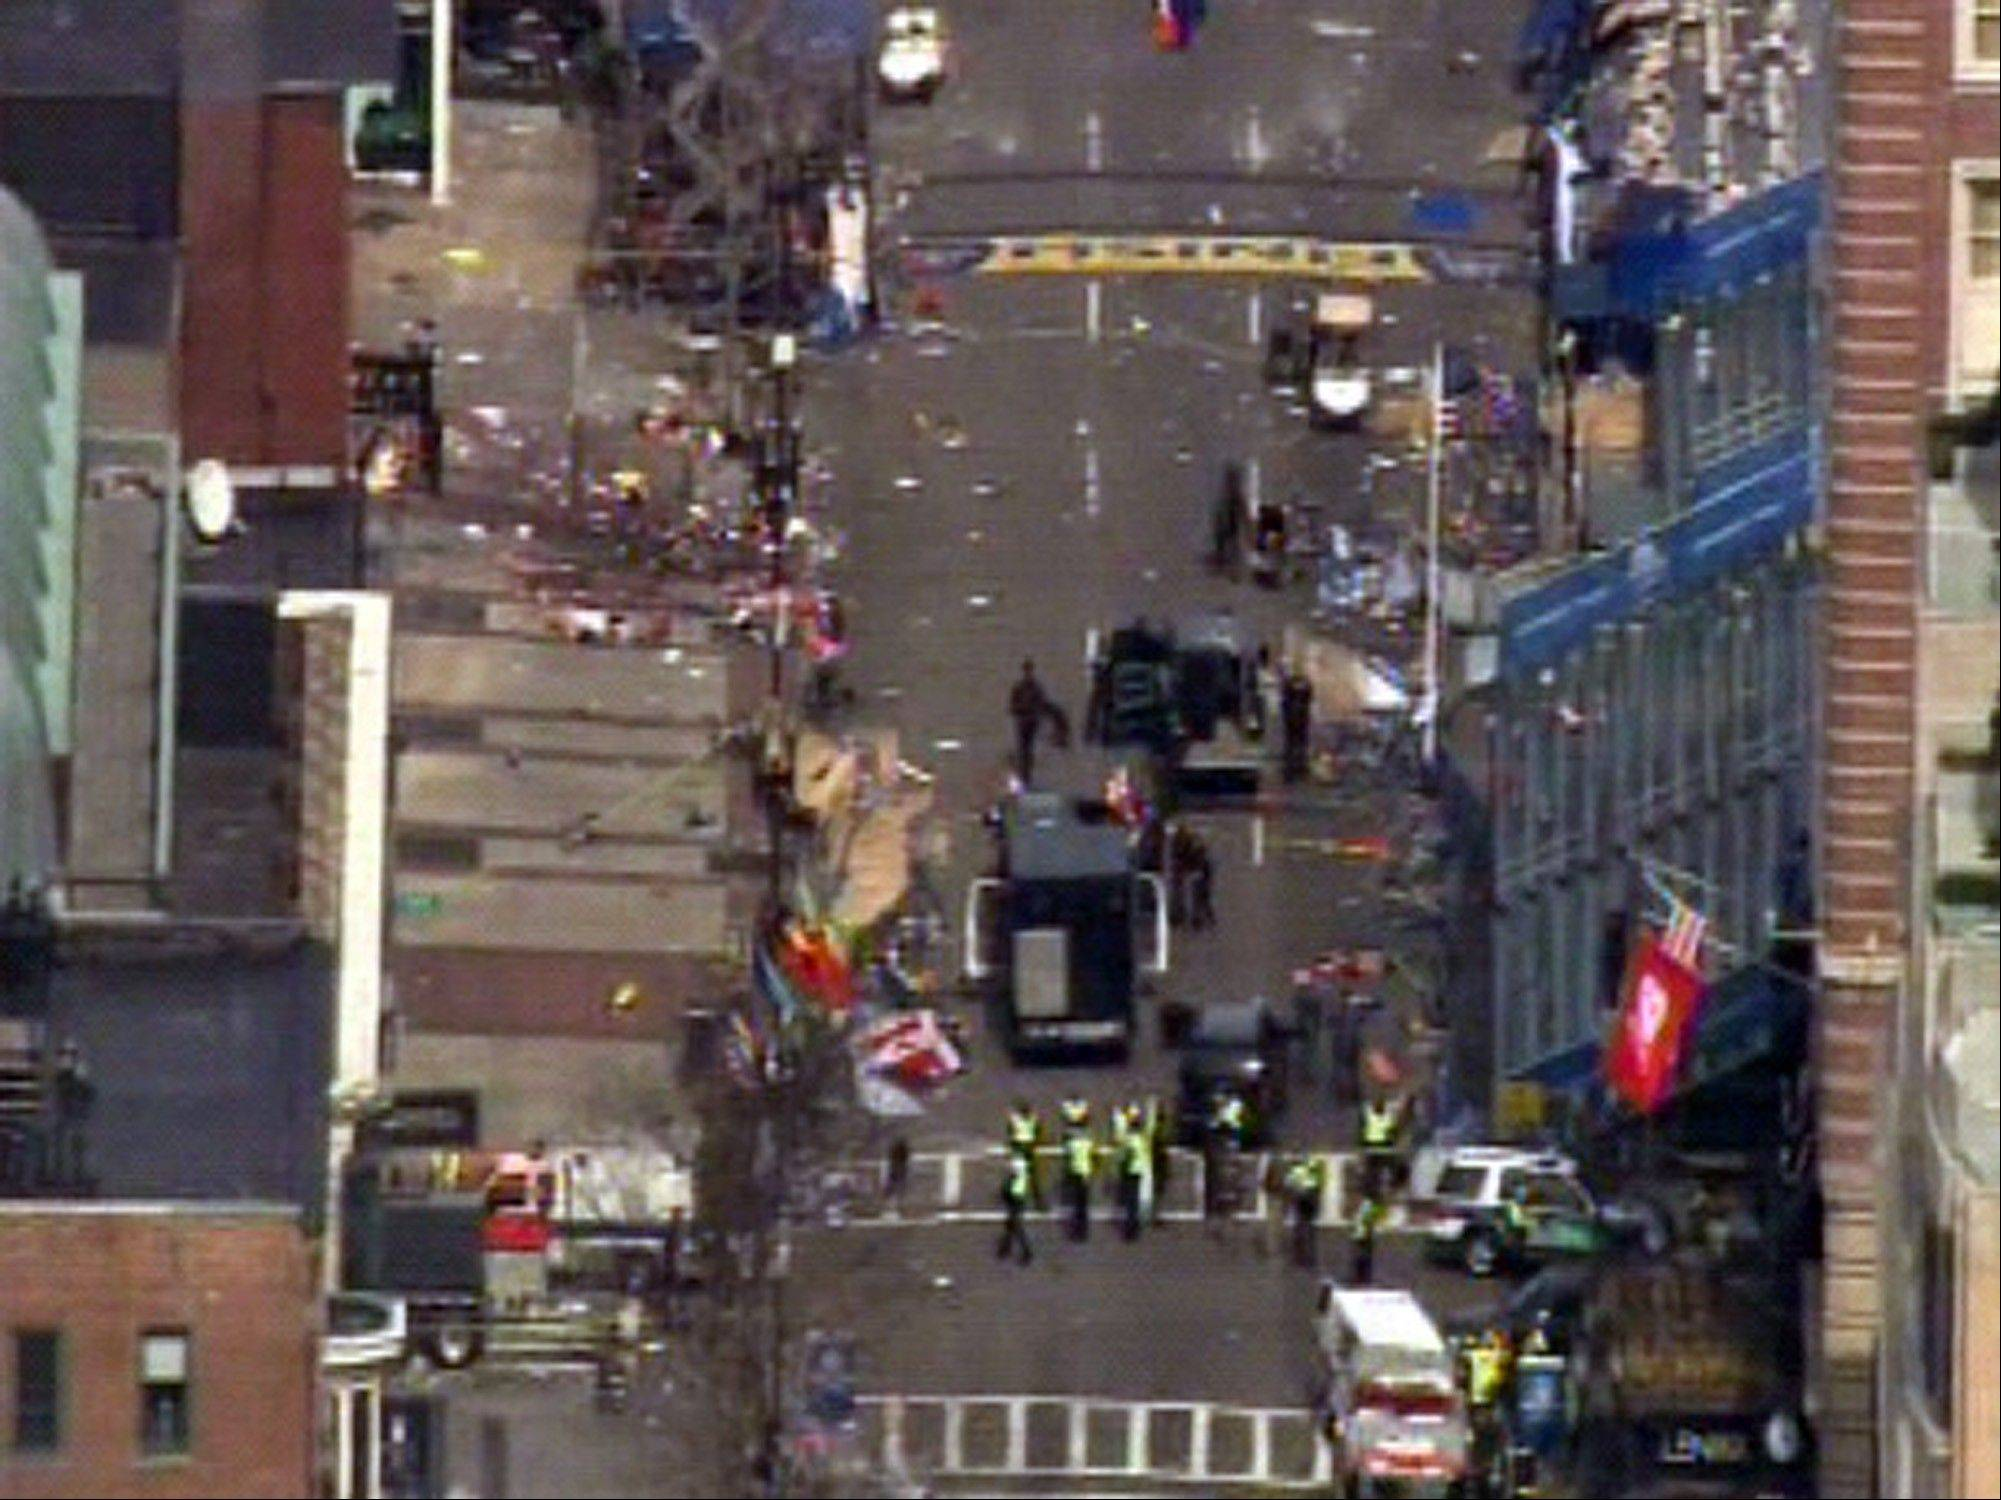 Medical workers and authorities work on the scene near the finish line of the 2013 Boston Marathon following an explosion in Boston, Monday, April 15, 2013.